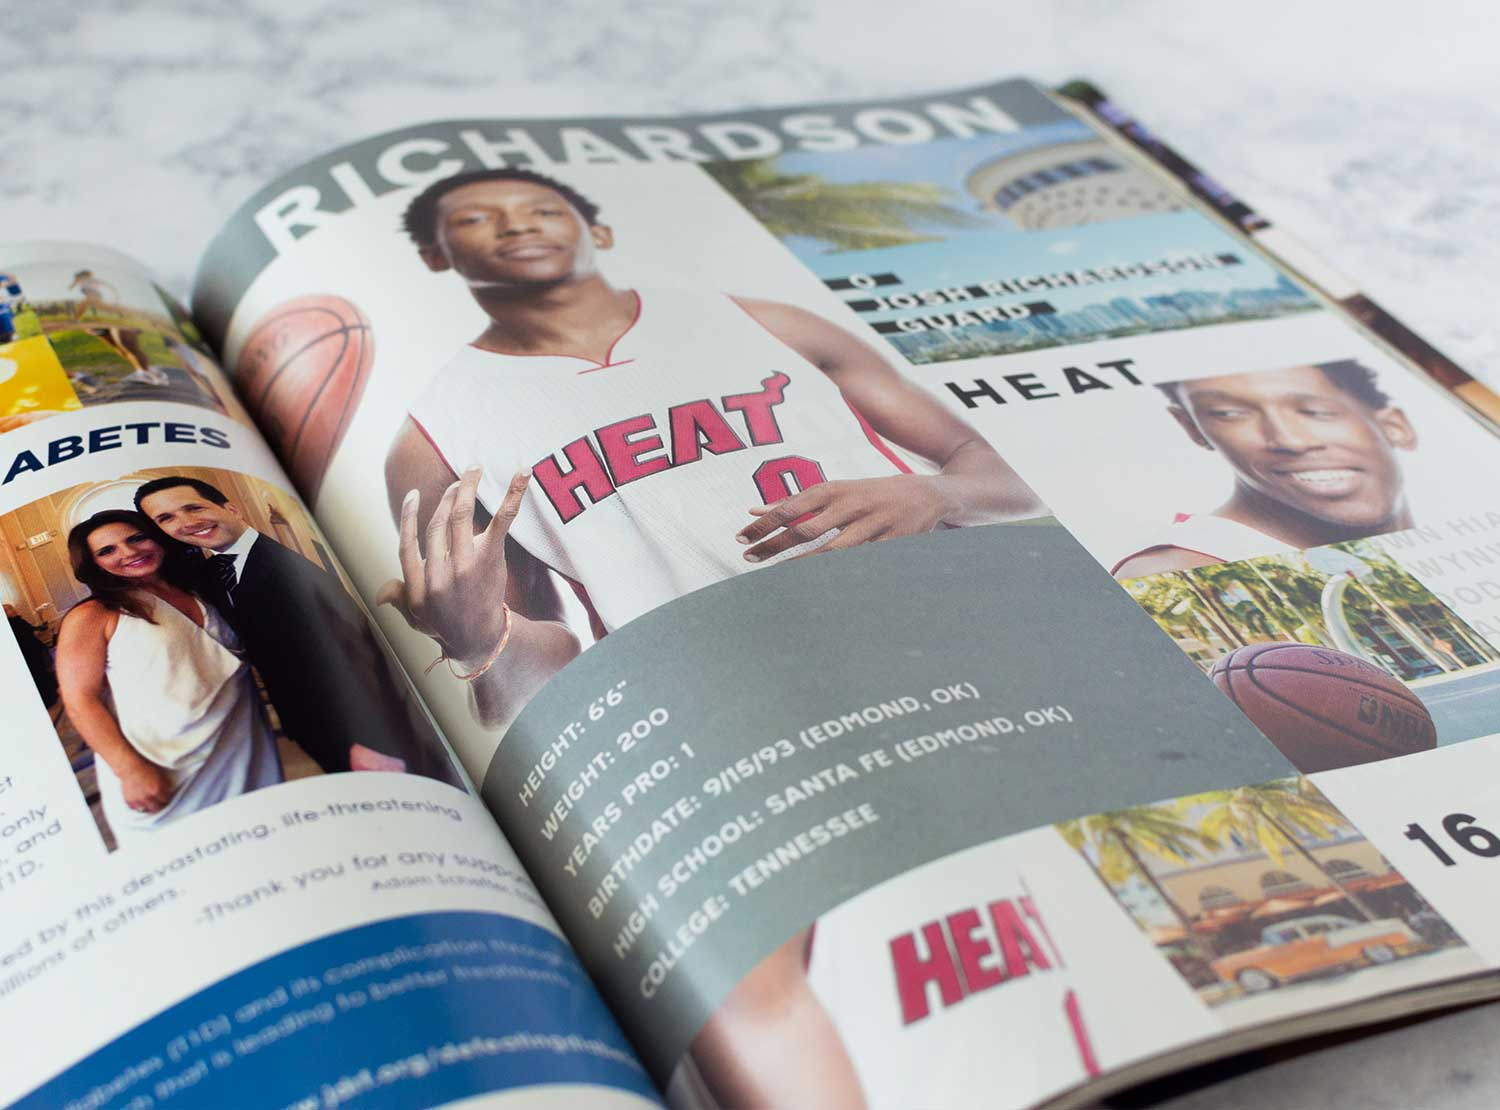 A player spread in the 2016-17 Miami Heat Yearbook.